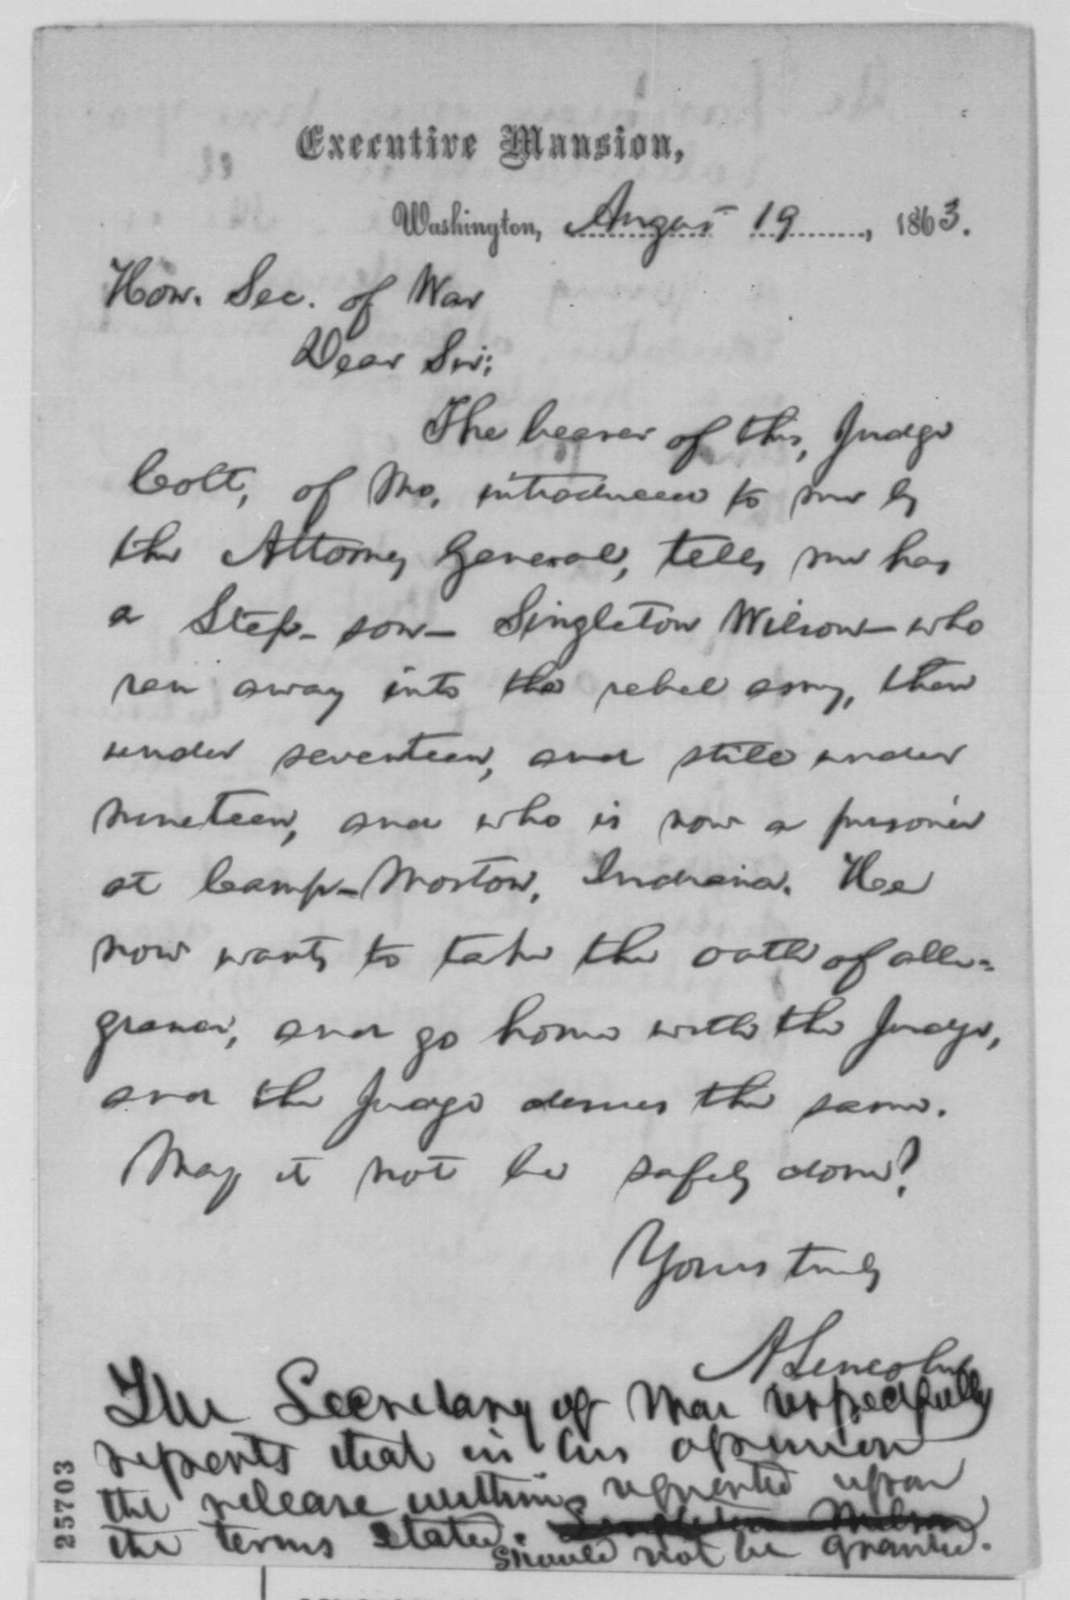 Abraham Lincoln to Edwin M. Stanton, Wednesday, August 19, 1863  (Case of Singleton Wilson; with Stanton's reply and an endorsement from Lincoln to Edward Bates, August 20, 1863)